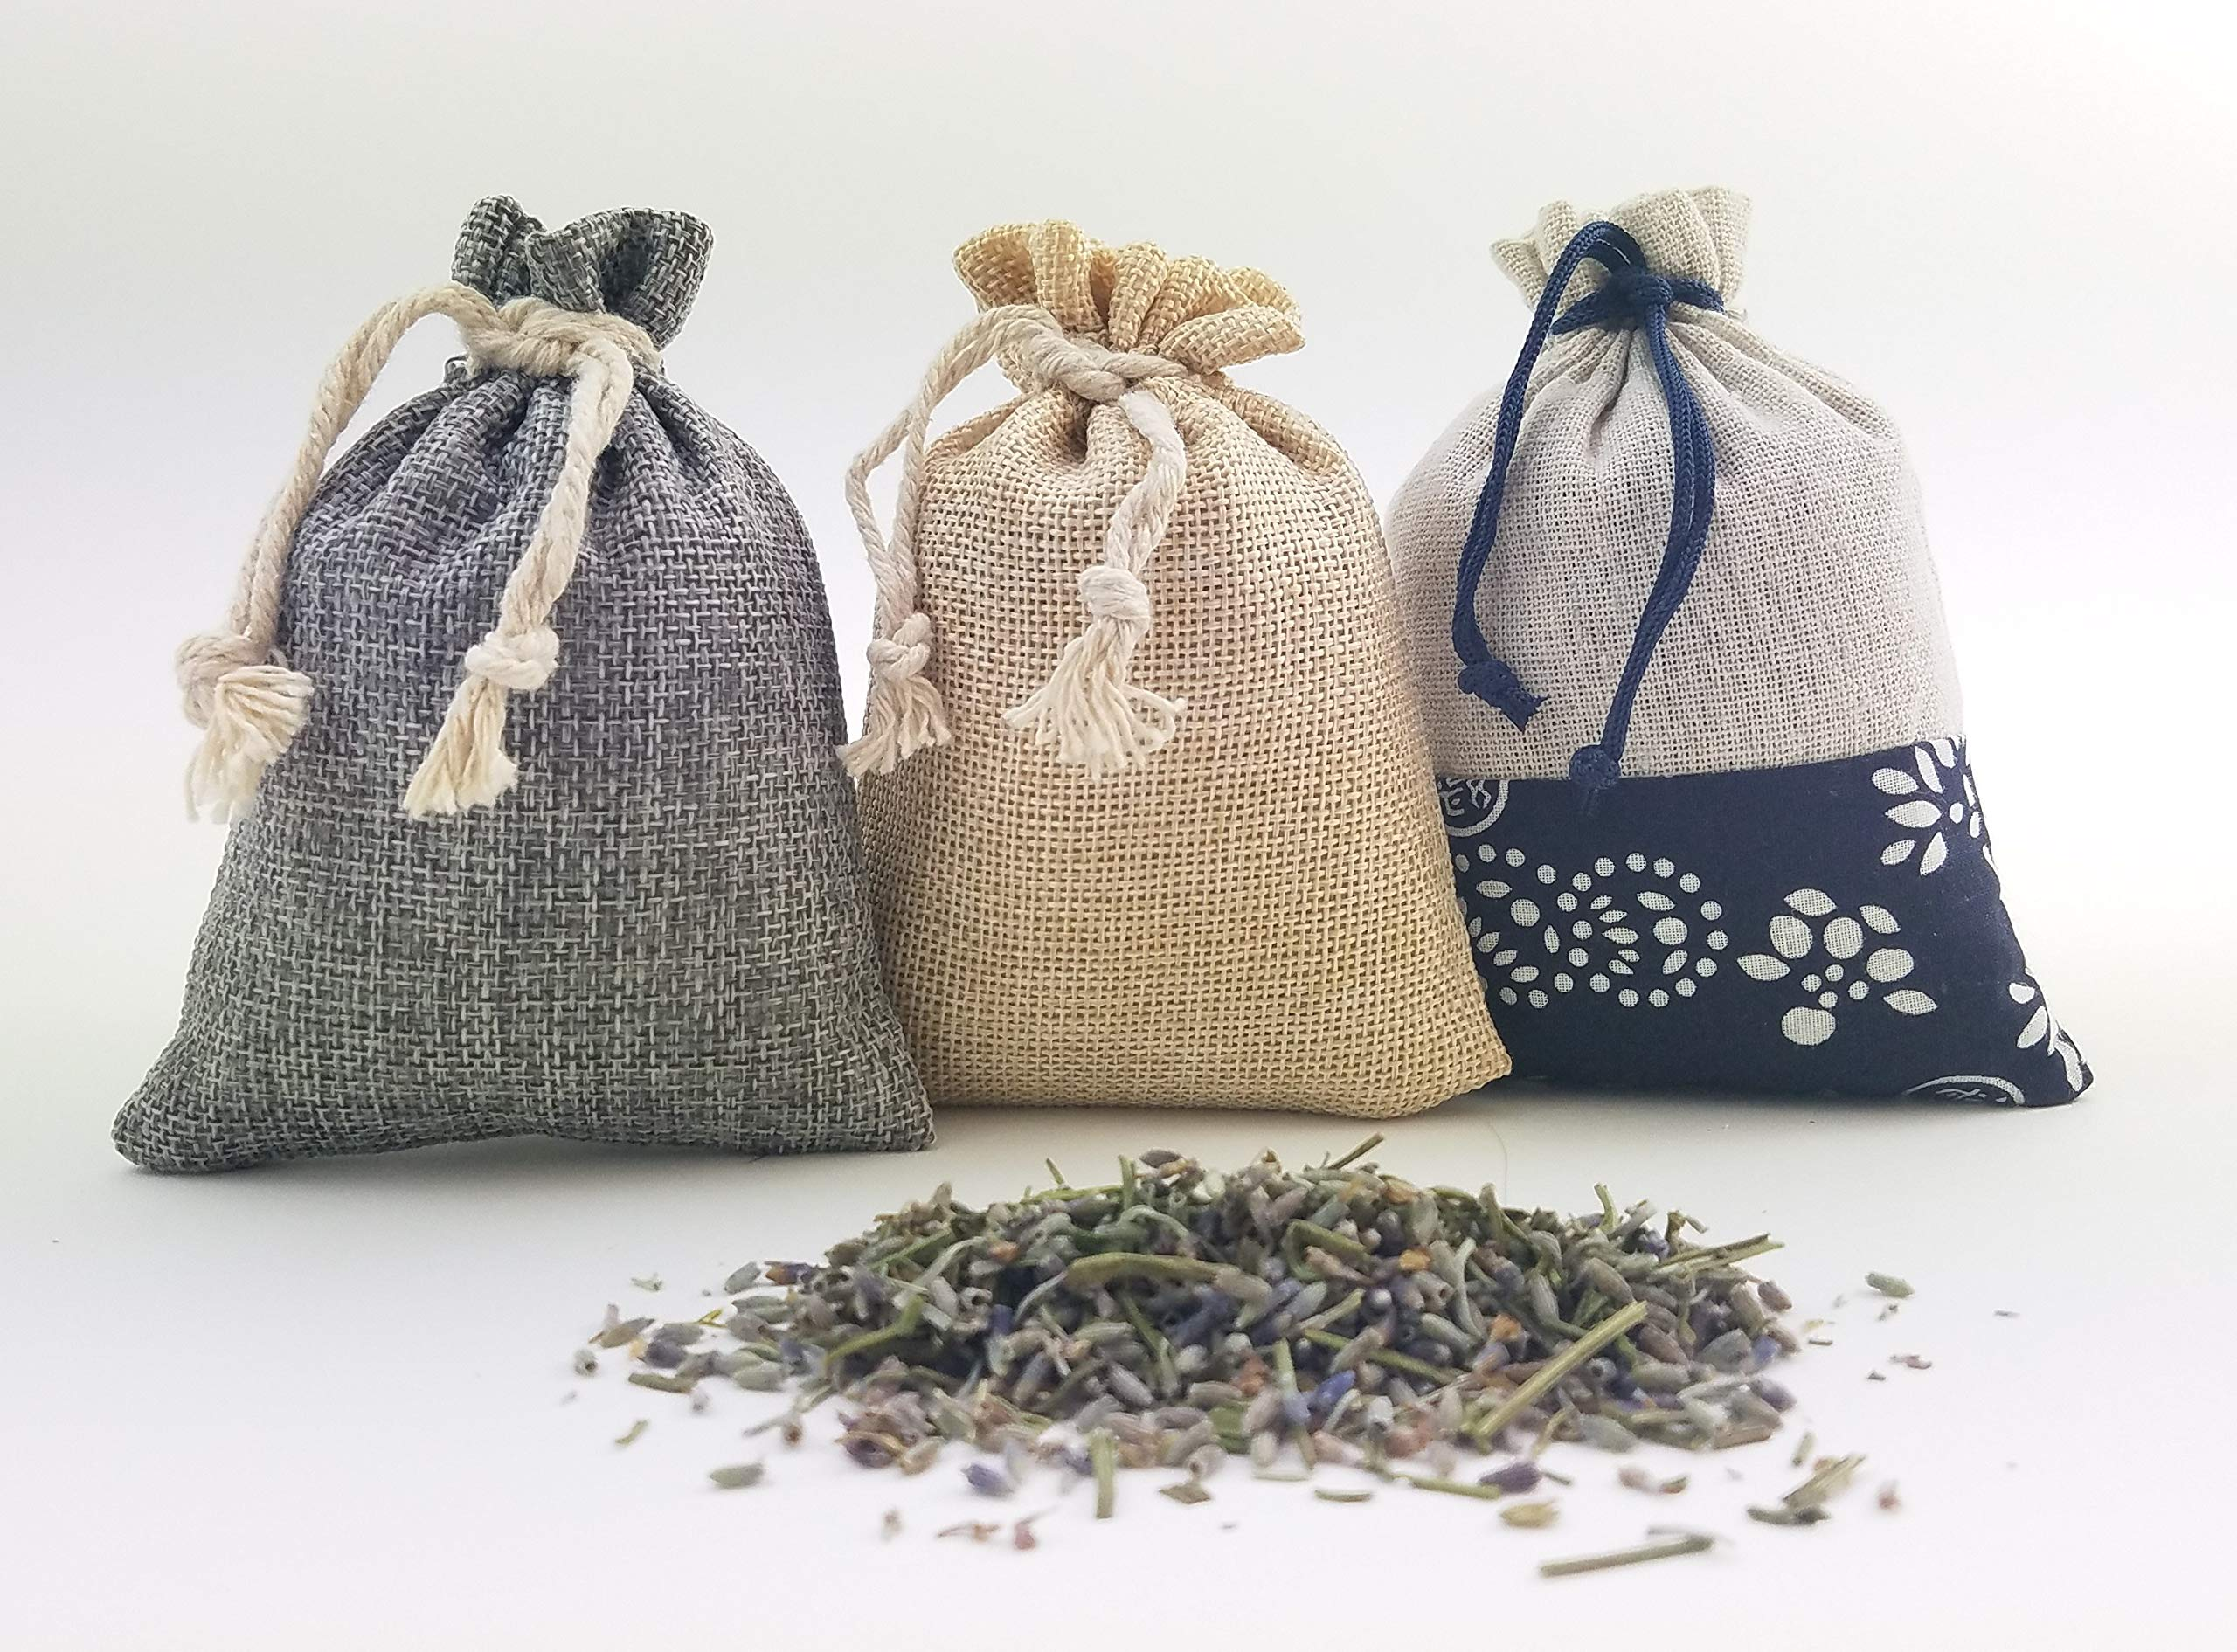 Lavender Scent Sachets, 32 Grams of Fresh, Naturally Dried, Fragrant Lavendula in Burlap Bags (3.7''x5.3''), (Set of 3 Colors: tan, Grey & Ethnic Print) Harvested in Northern California